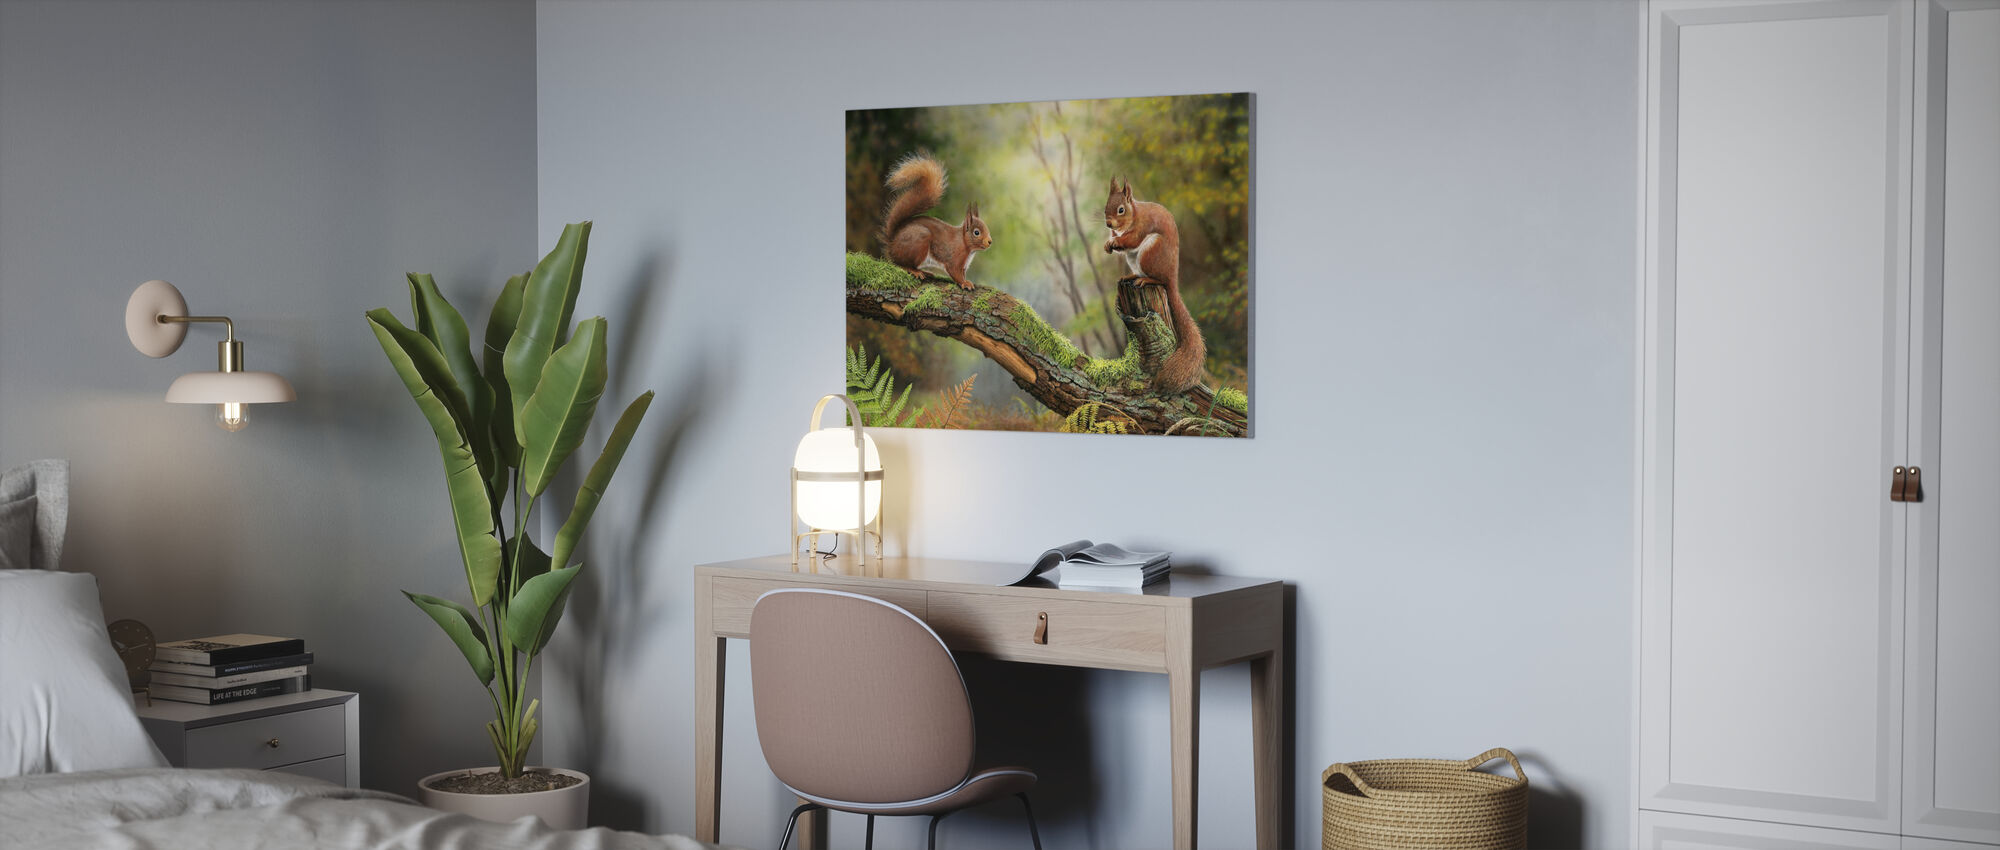 Red Squirrels - Canvas print - Office